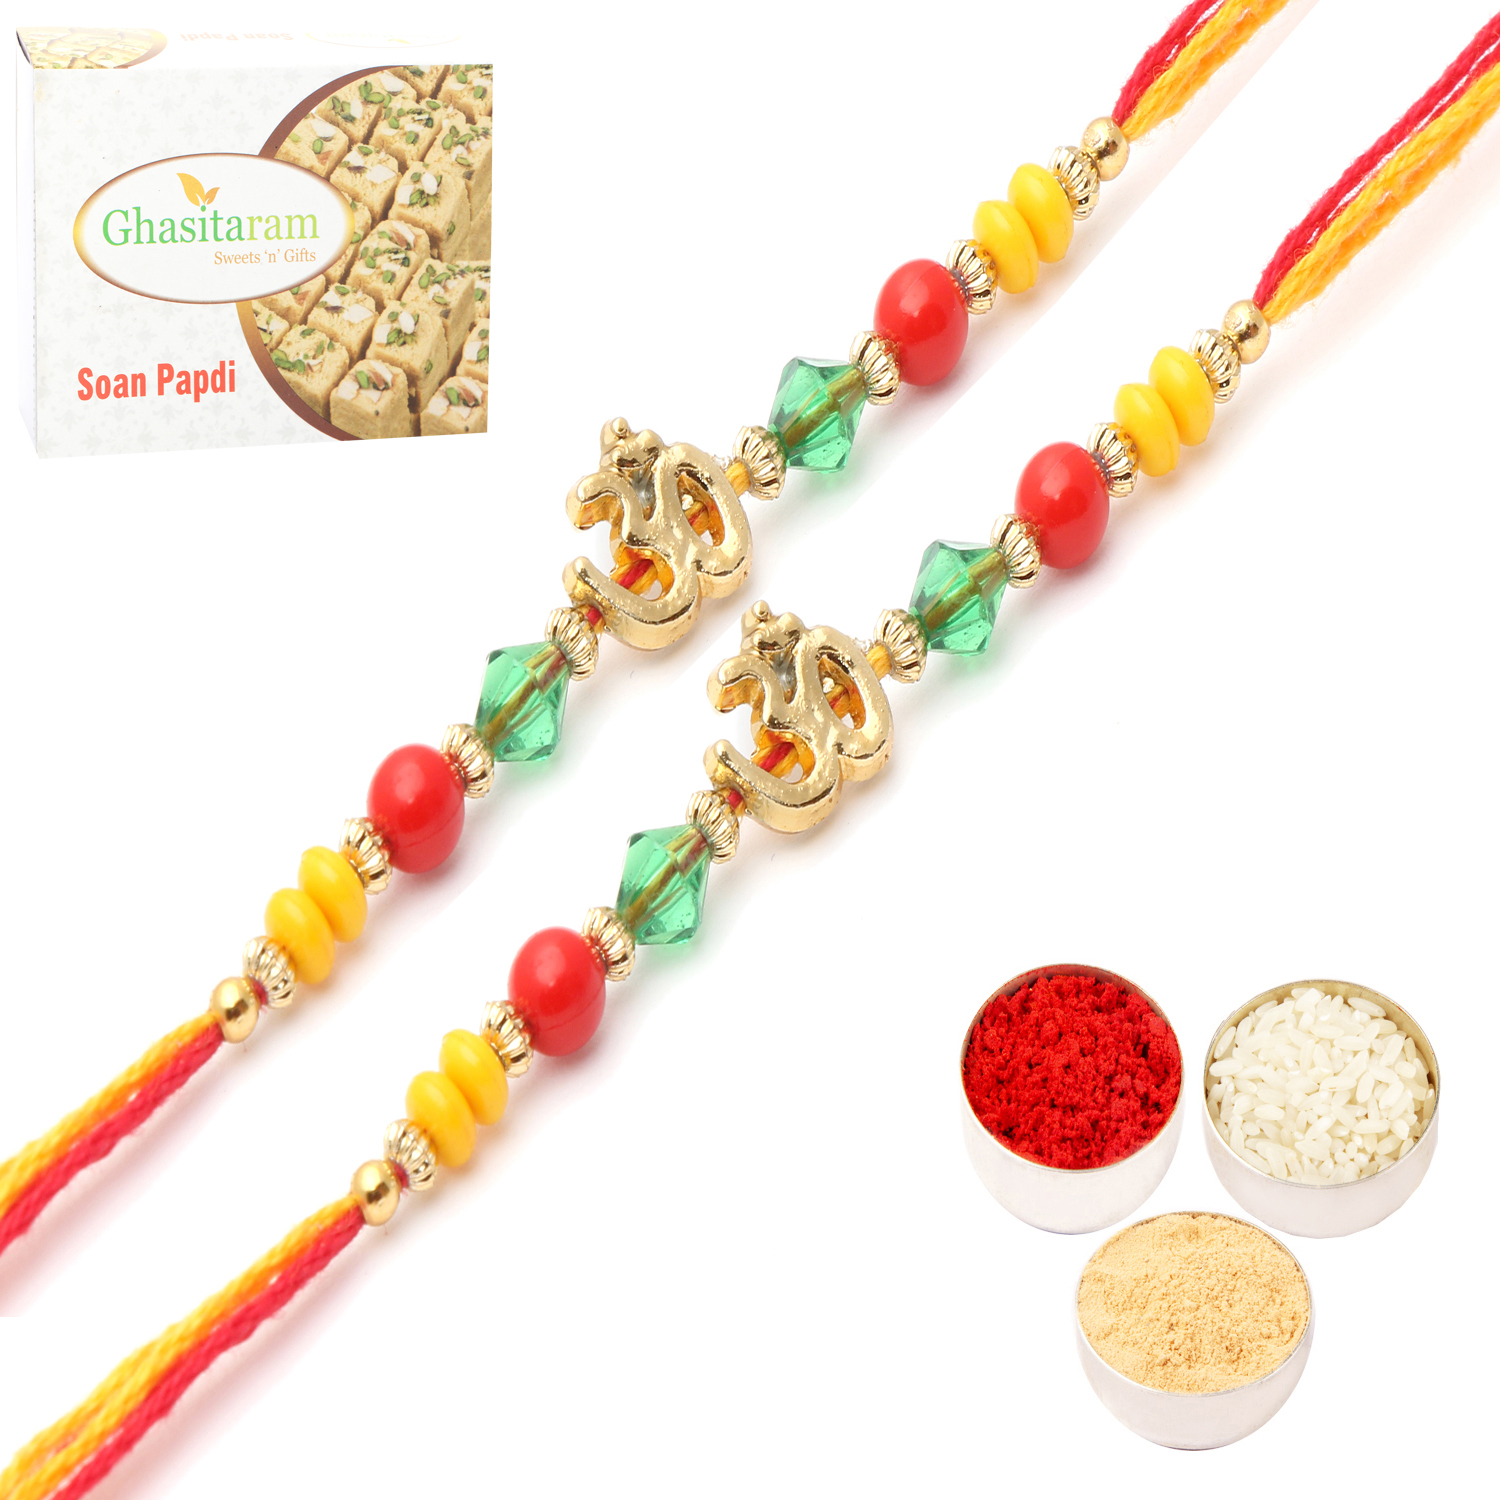 Set of 2 6013 Rakhi Threads with 200Gm Soan Papdi